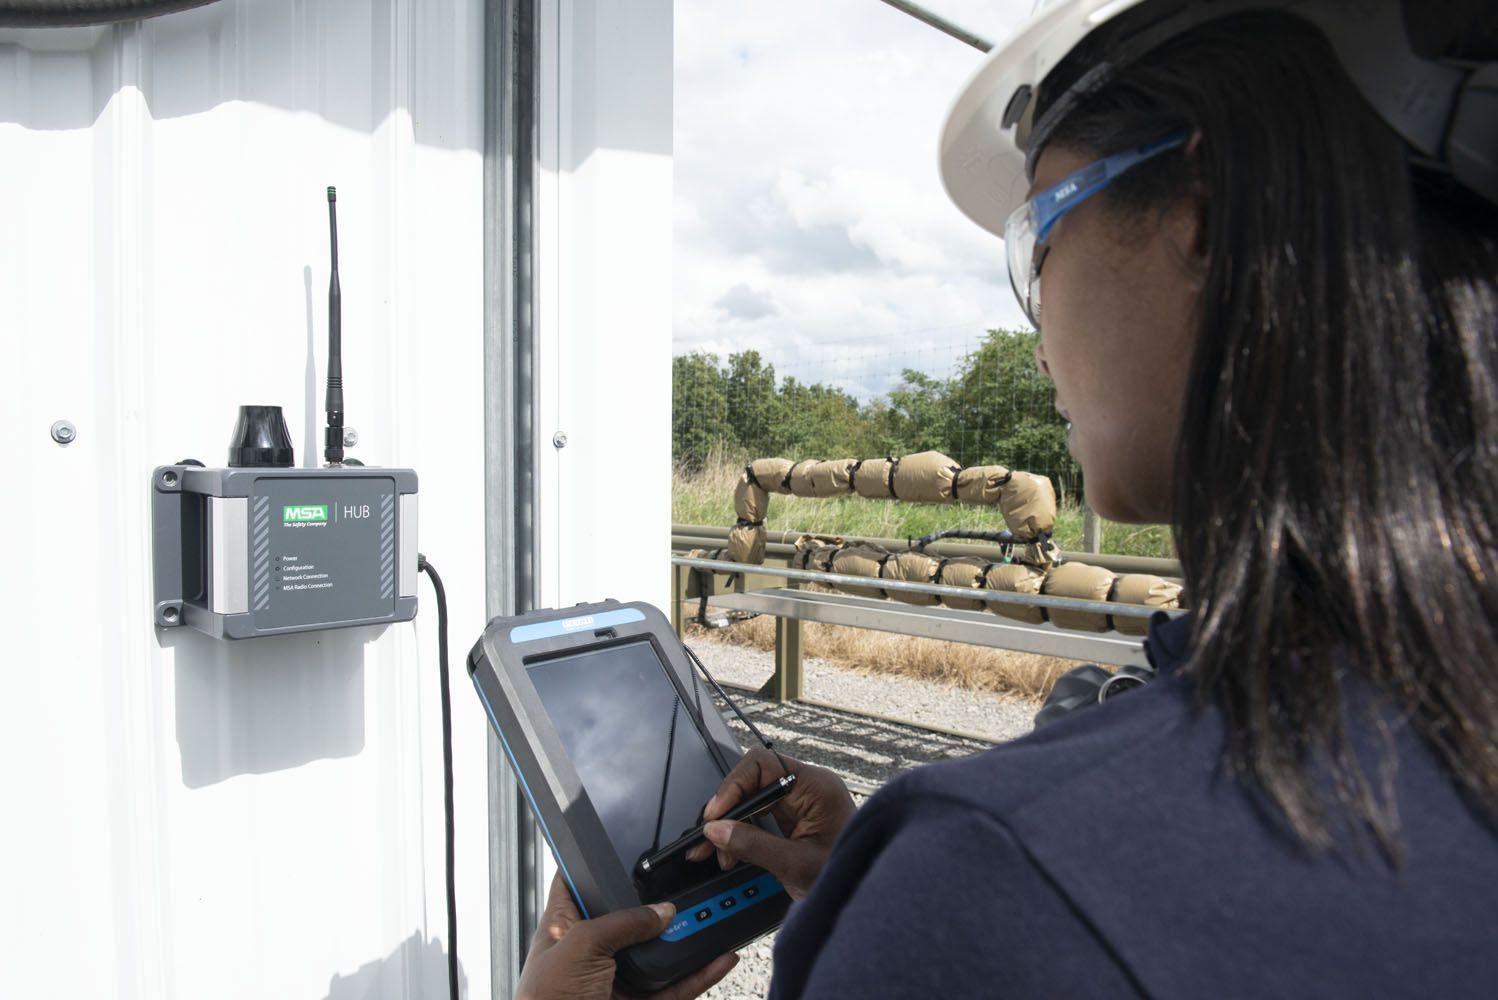 A woman monitors an oil & gas worksite from the ALTAIR io360 hub and tablet device